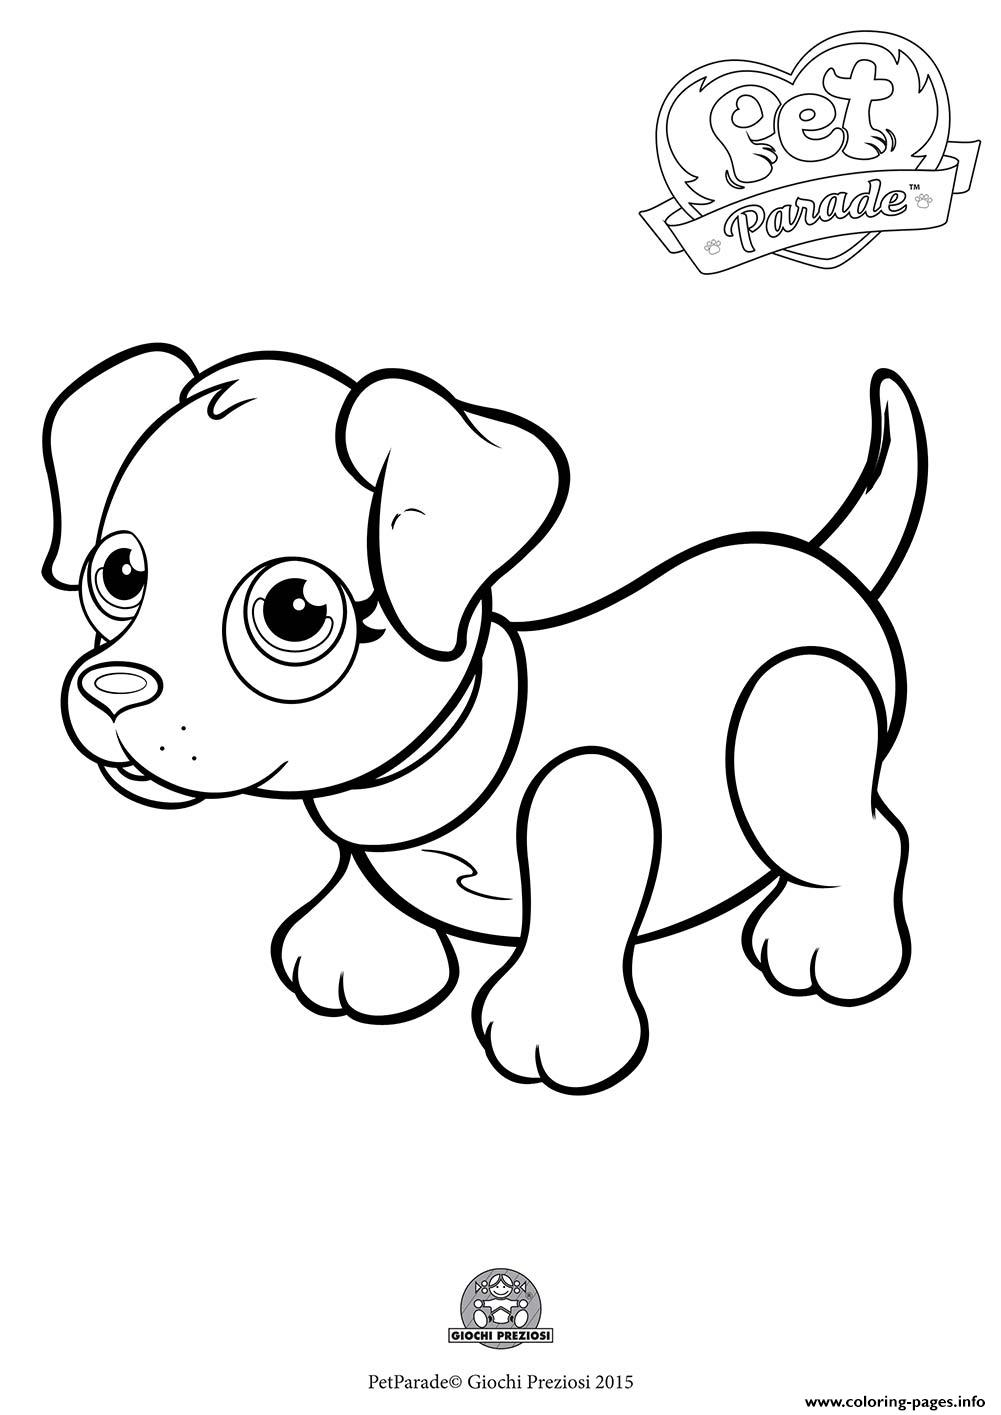 Pet Parade Cute Dog Labradog Coloring Pages